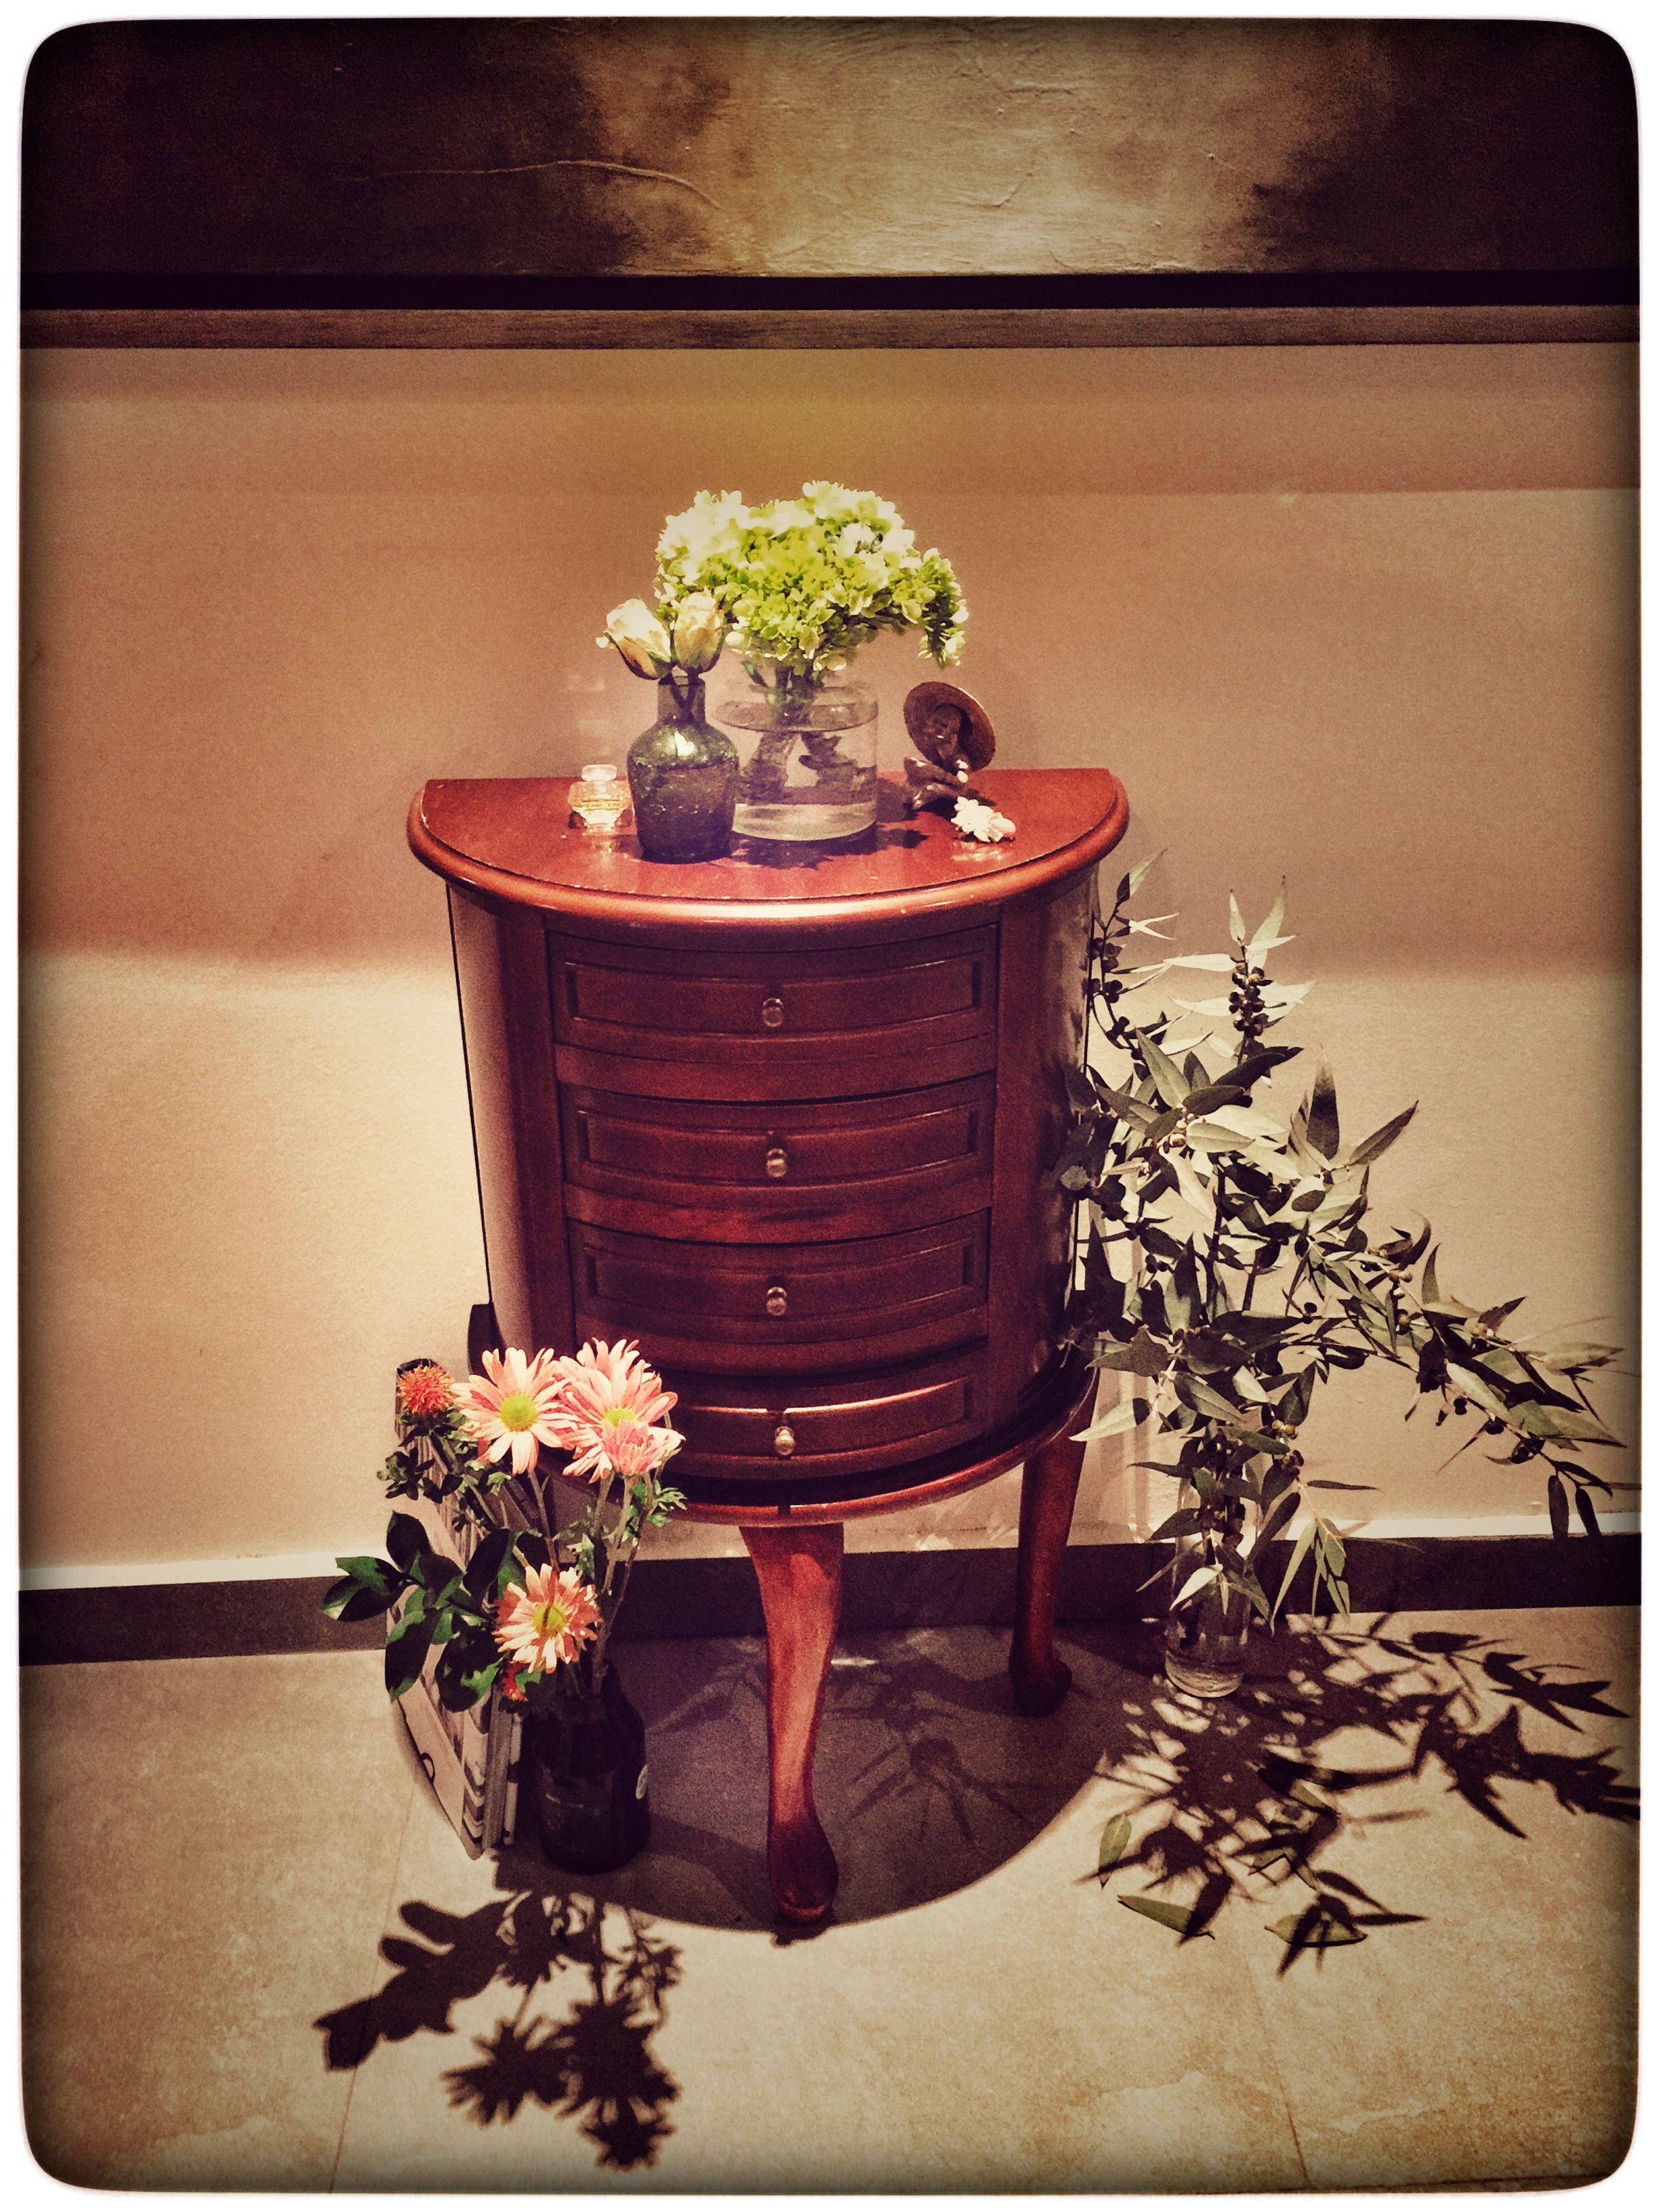 Antique chest with flowers